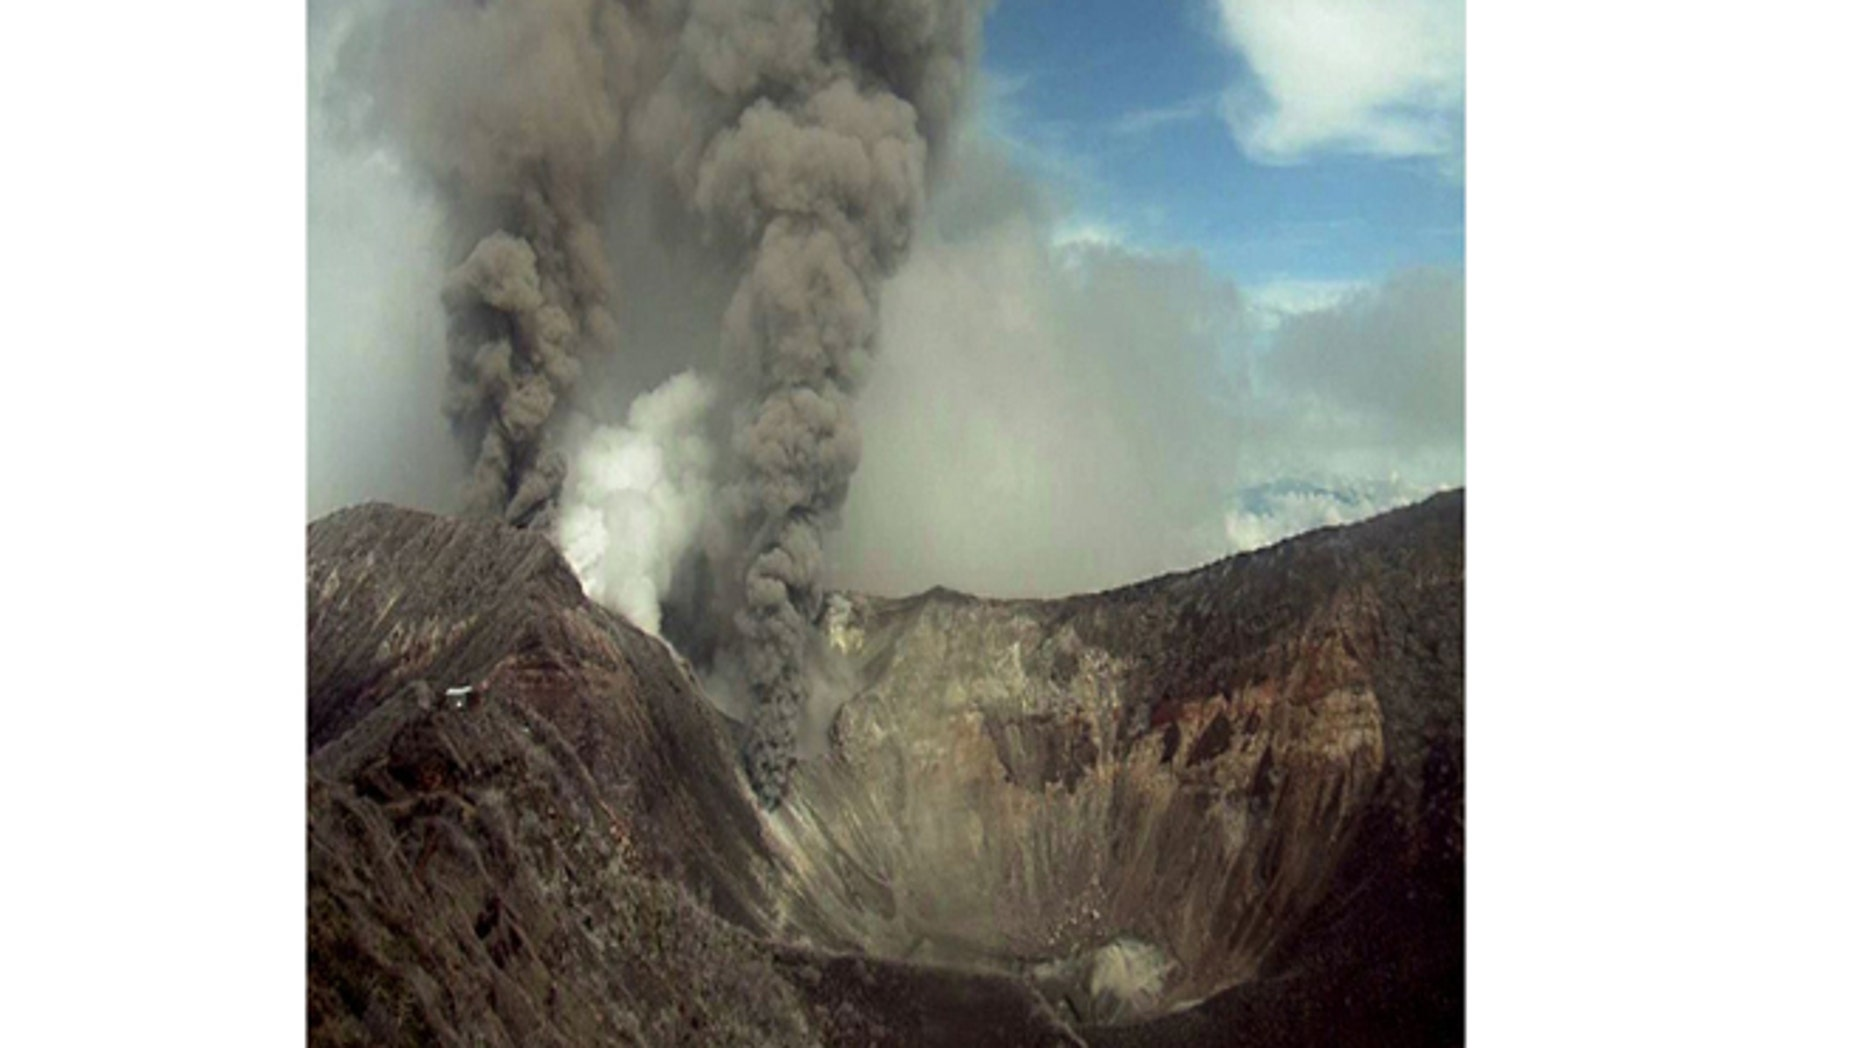 May 21, 2013: In this image provided by the Volcanological and Seismological Observatory of Costa Rica, the Turrialba volcano emits an ash-filled gas plume in Costa Rica.